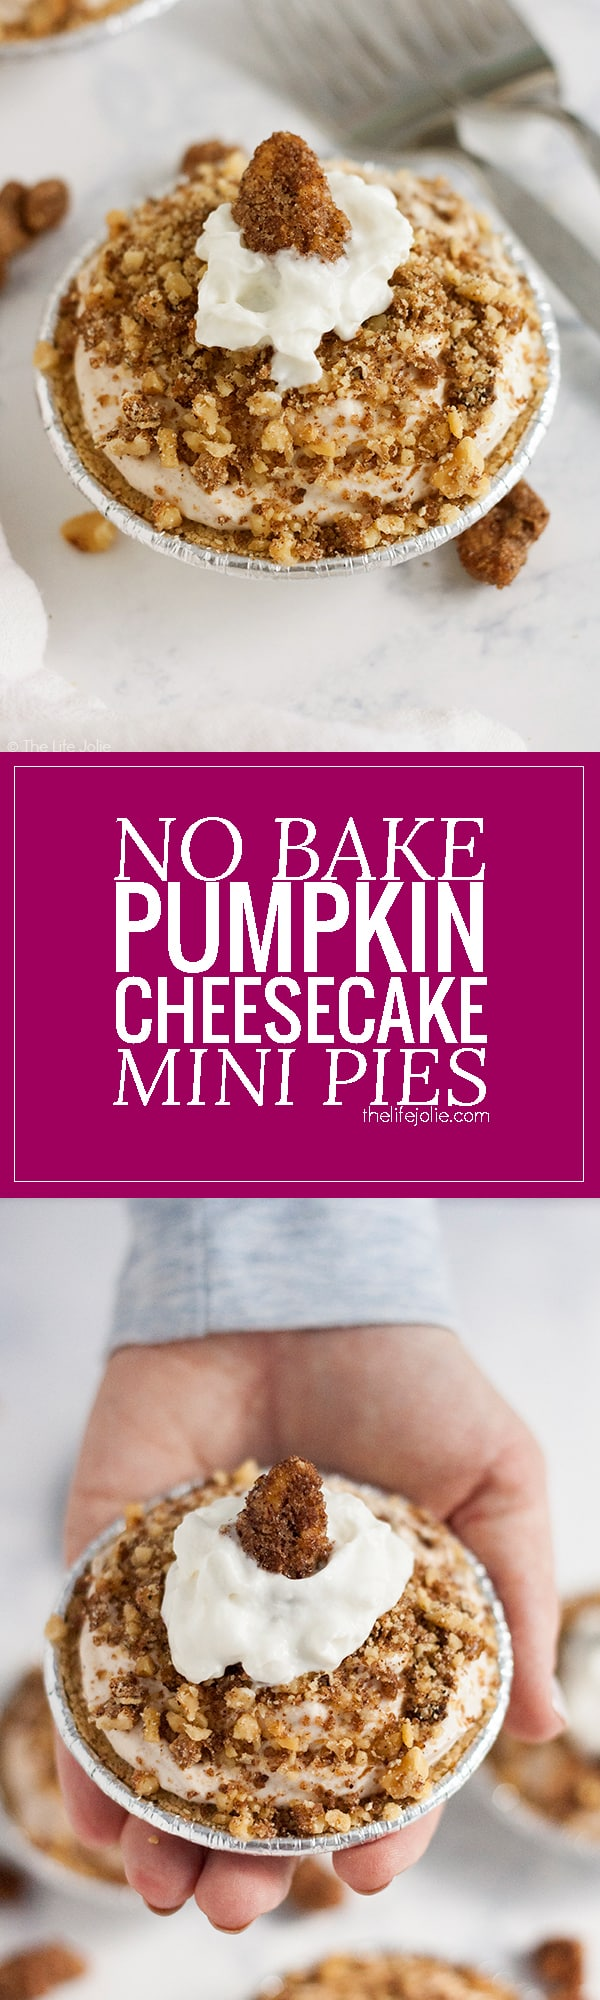 This No Bake Pumpkin Cheesecake Mini Pies recipe is such an easy fall dessert option! A few simple ingredients (including some secret ingredients that allow this to be a no bake recipe) and you've got a delicious dessert that's quick enough to whip up for an afternoon snack but decadent enough to make for the holidays! #ad